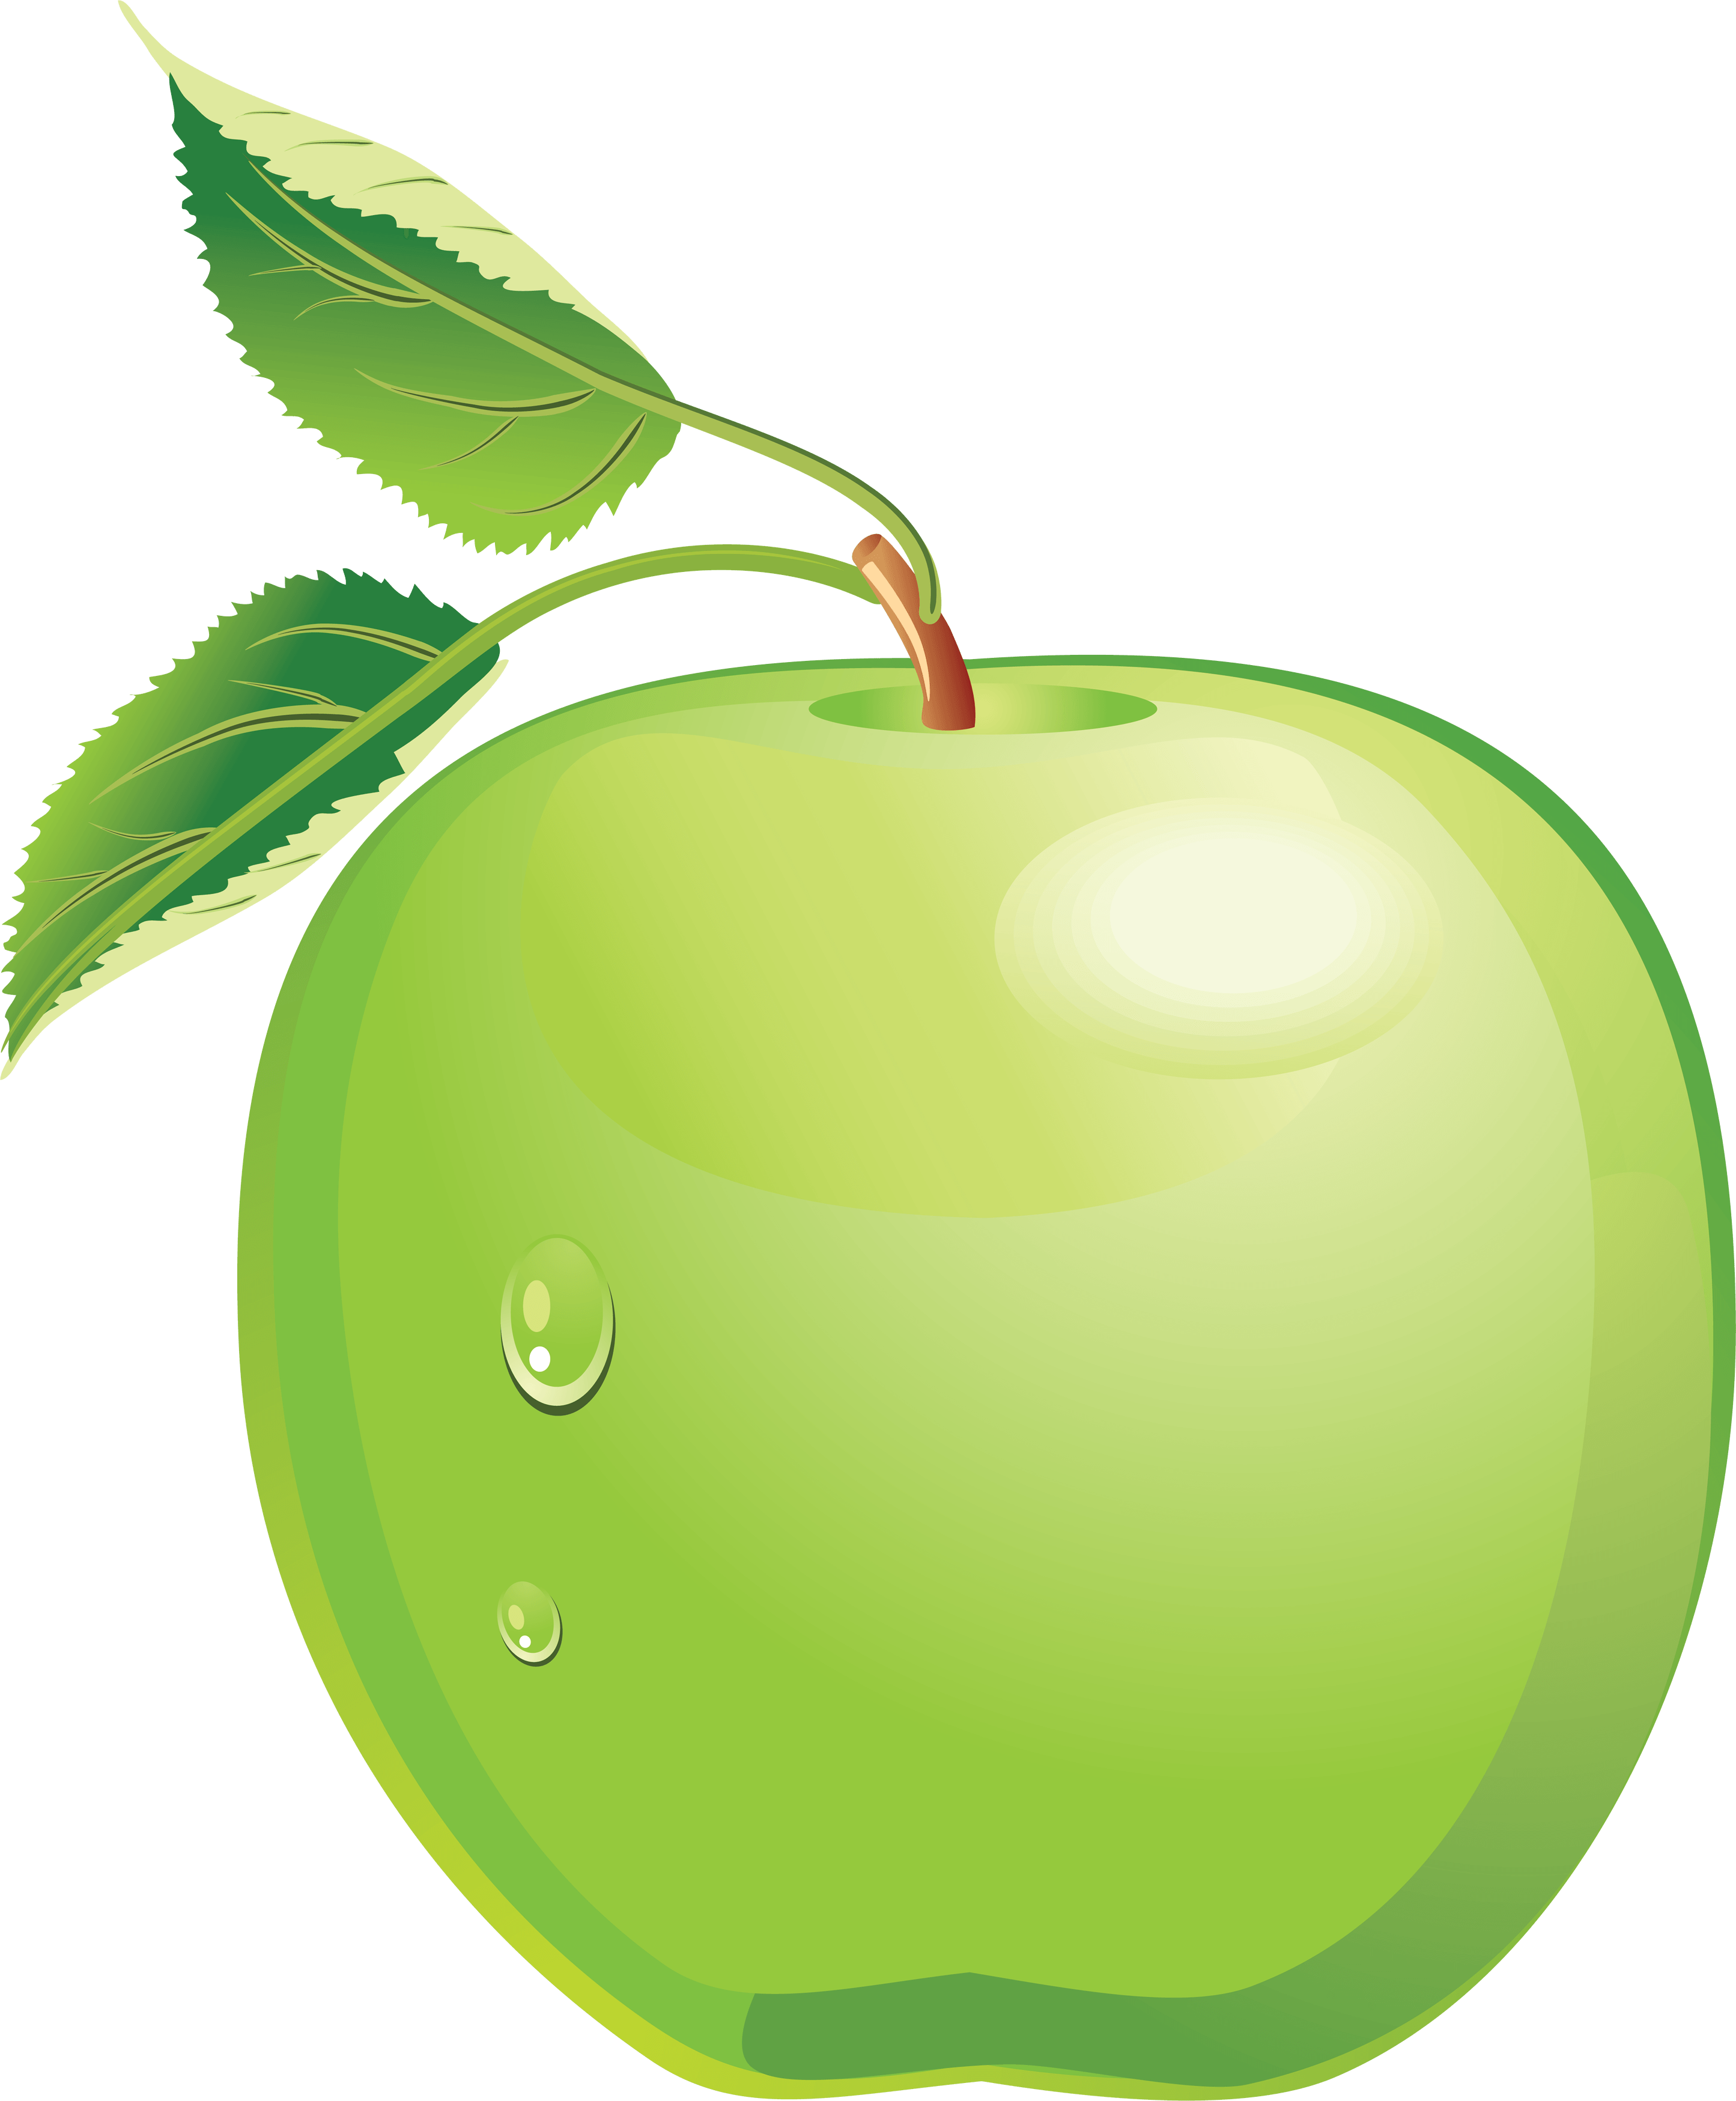 Green apple clipart png picture library stock 10 Green Apple Png Image picture library stock